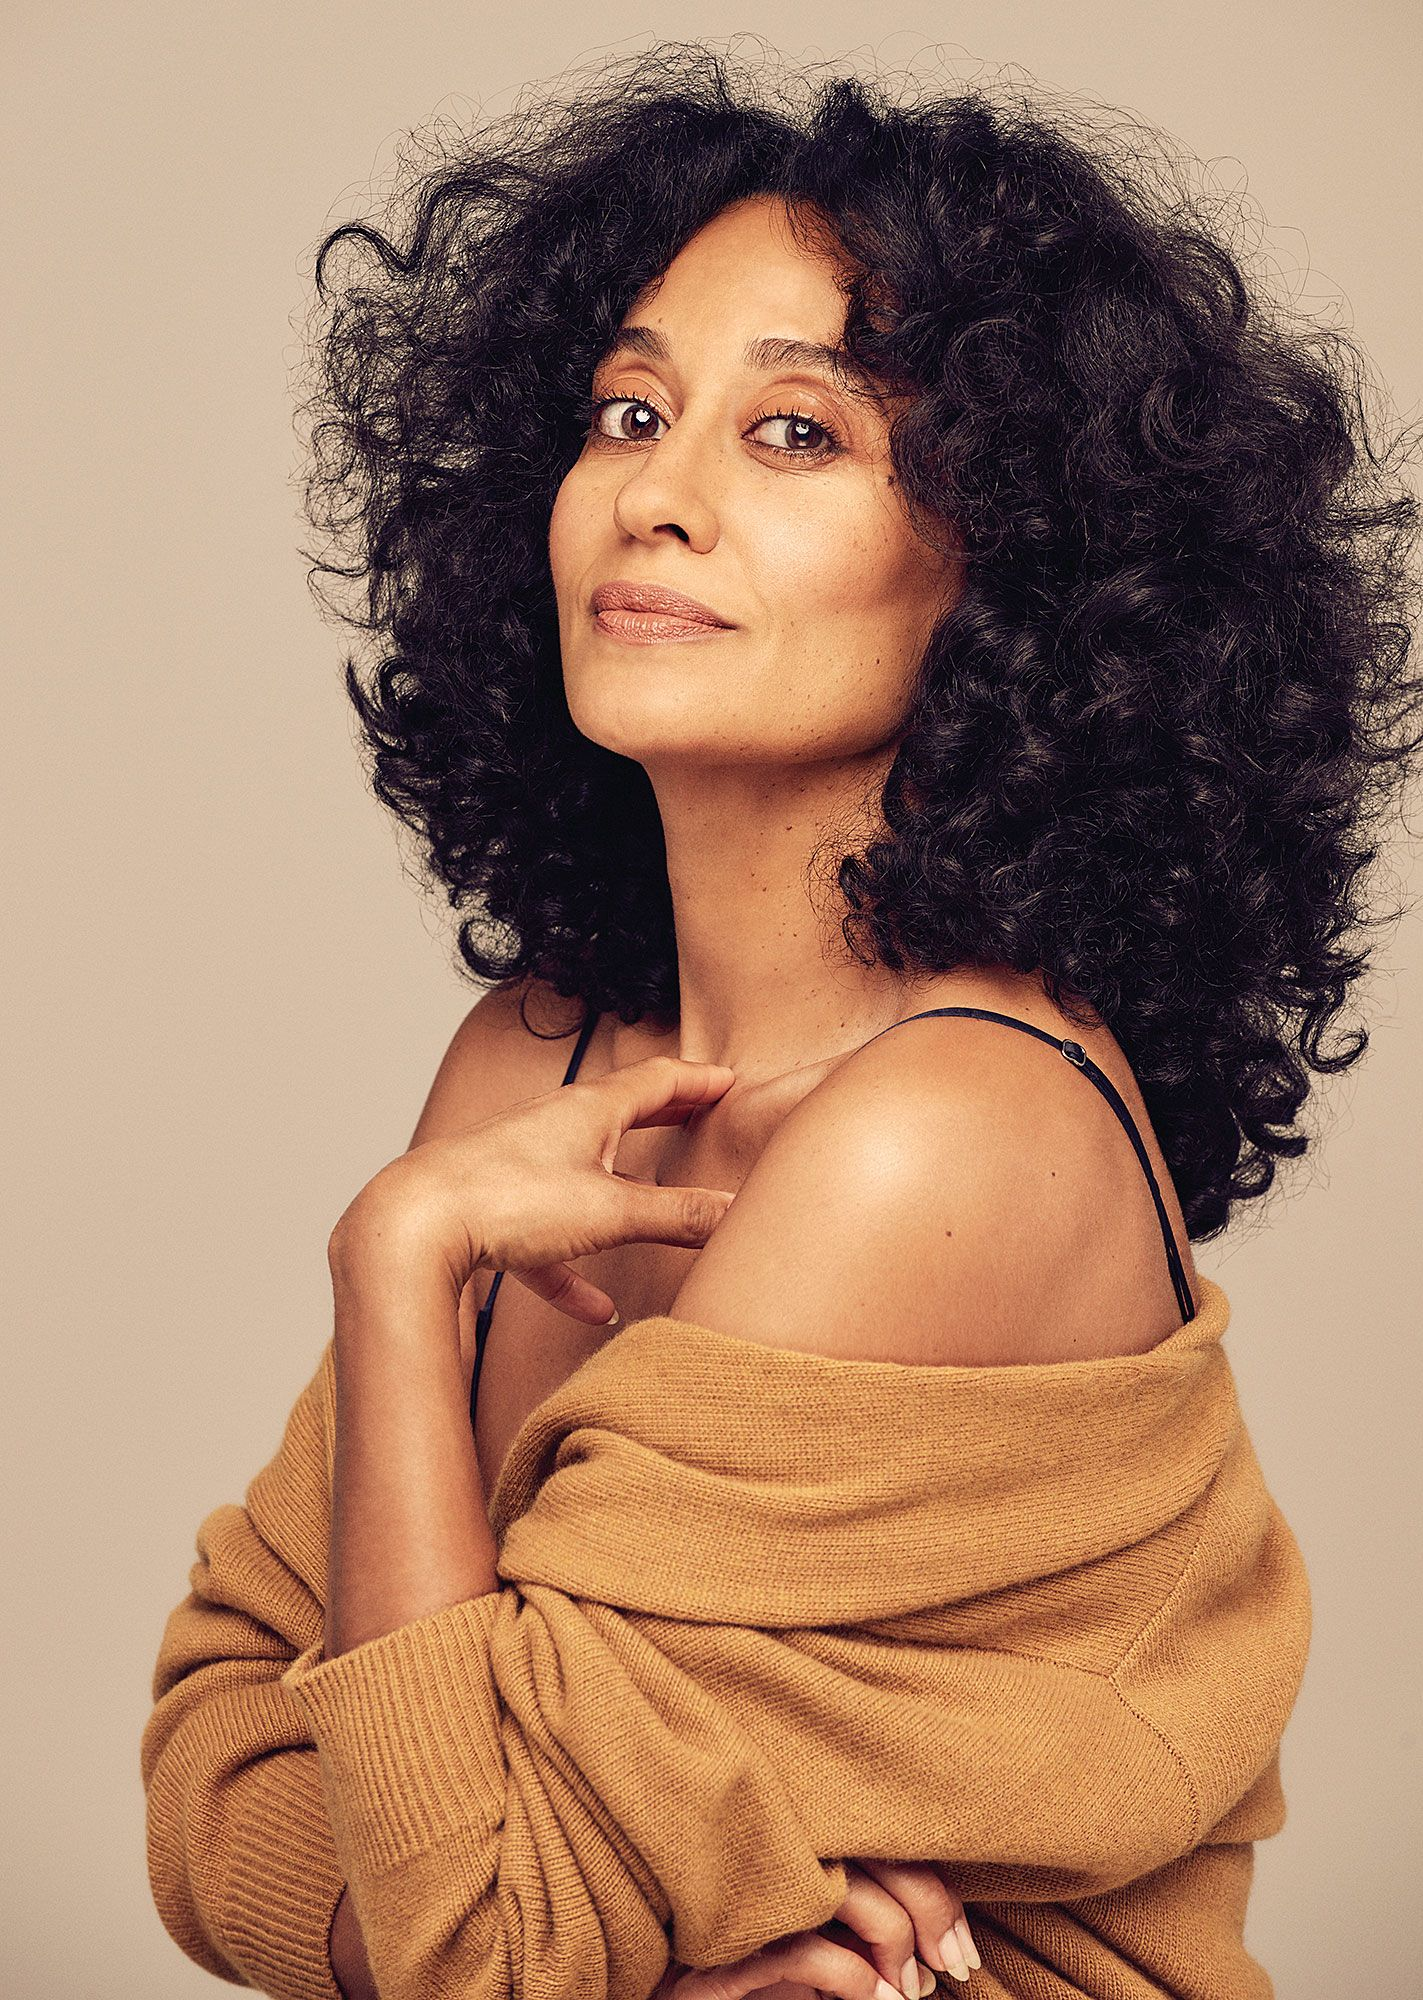 Tracee Ellis Ross Tracee Ellis Ross new images